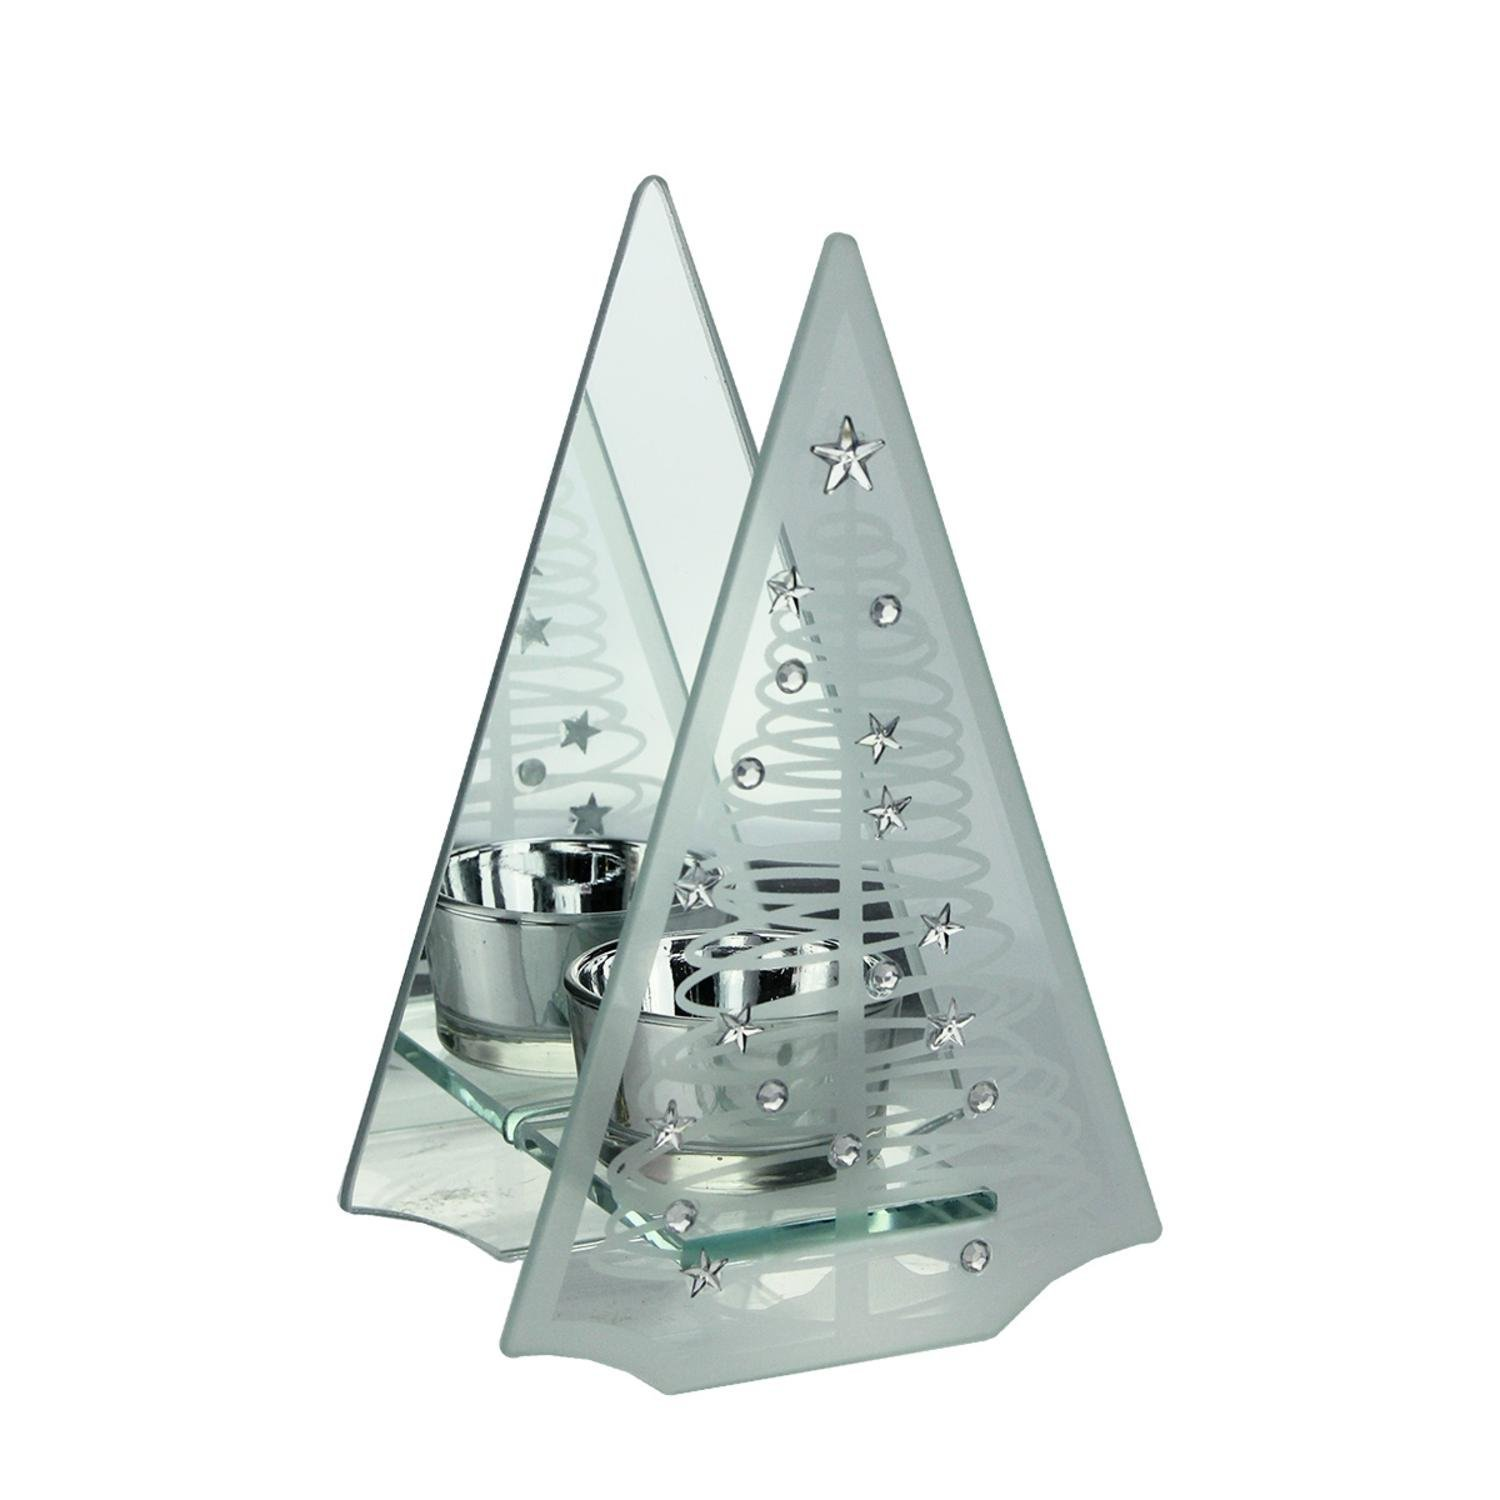 Midwest Gloves 6.75'' Frosted Glass Mirrored Christmas Tree Tea Light Candle Holder